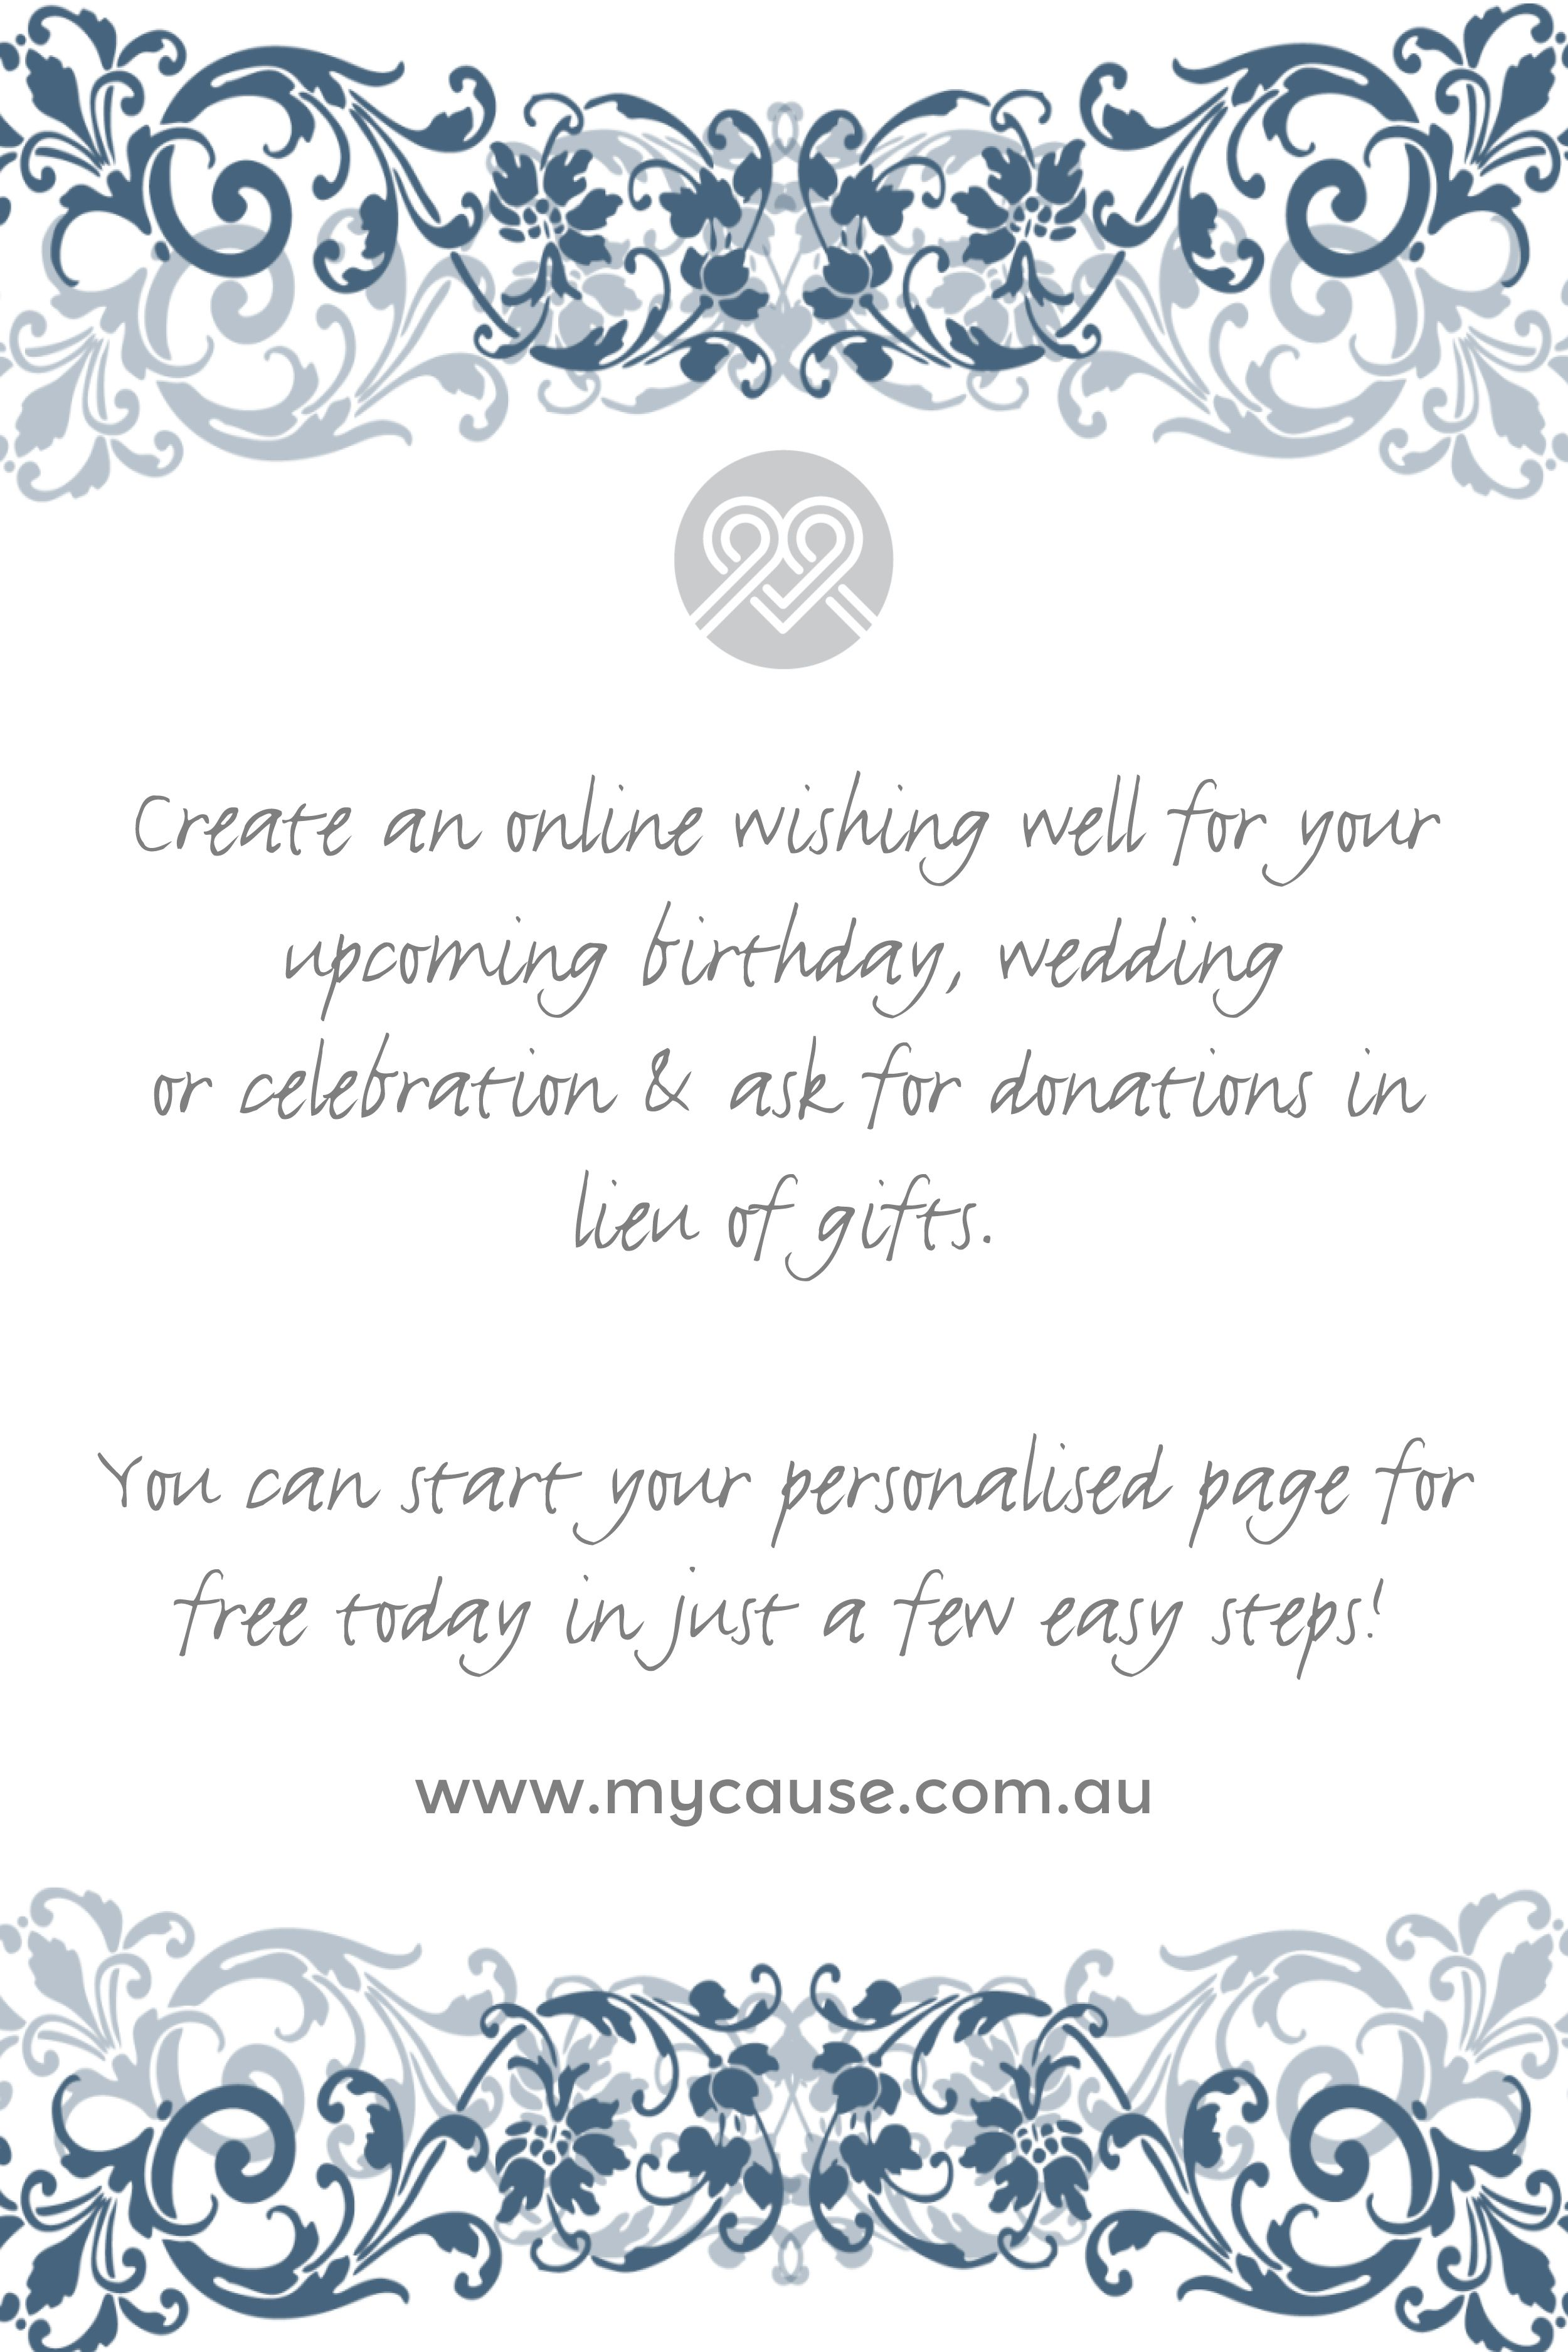 Create an online wishing well for your wedding